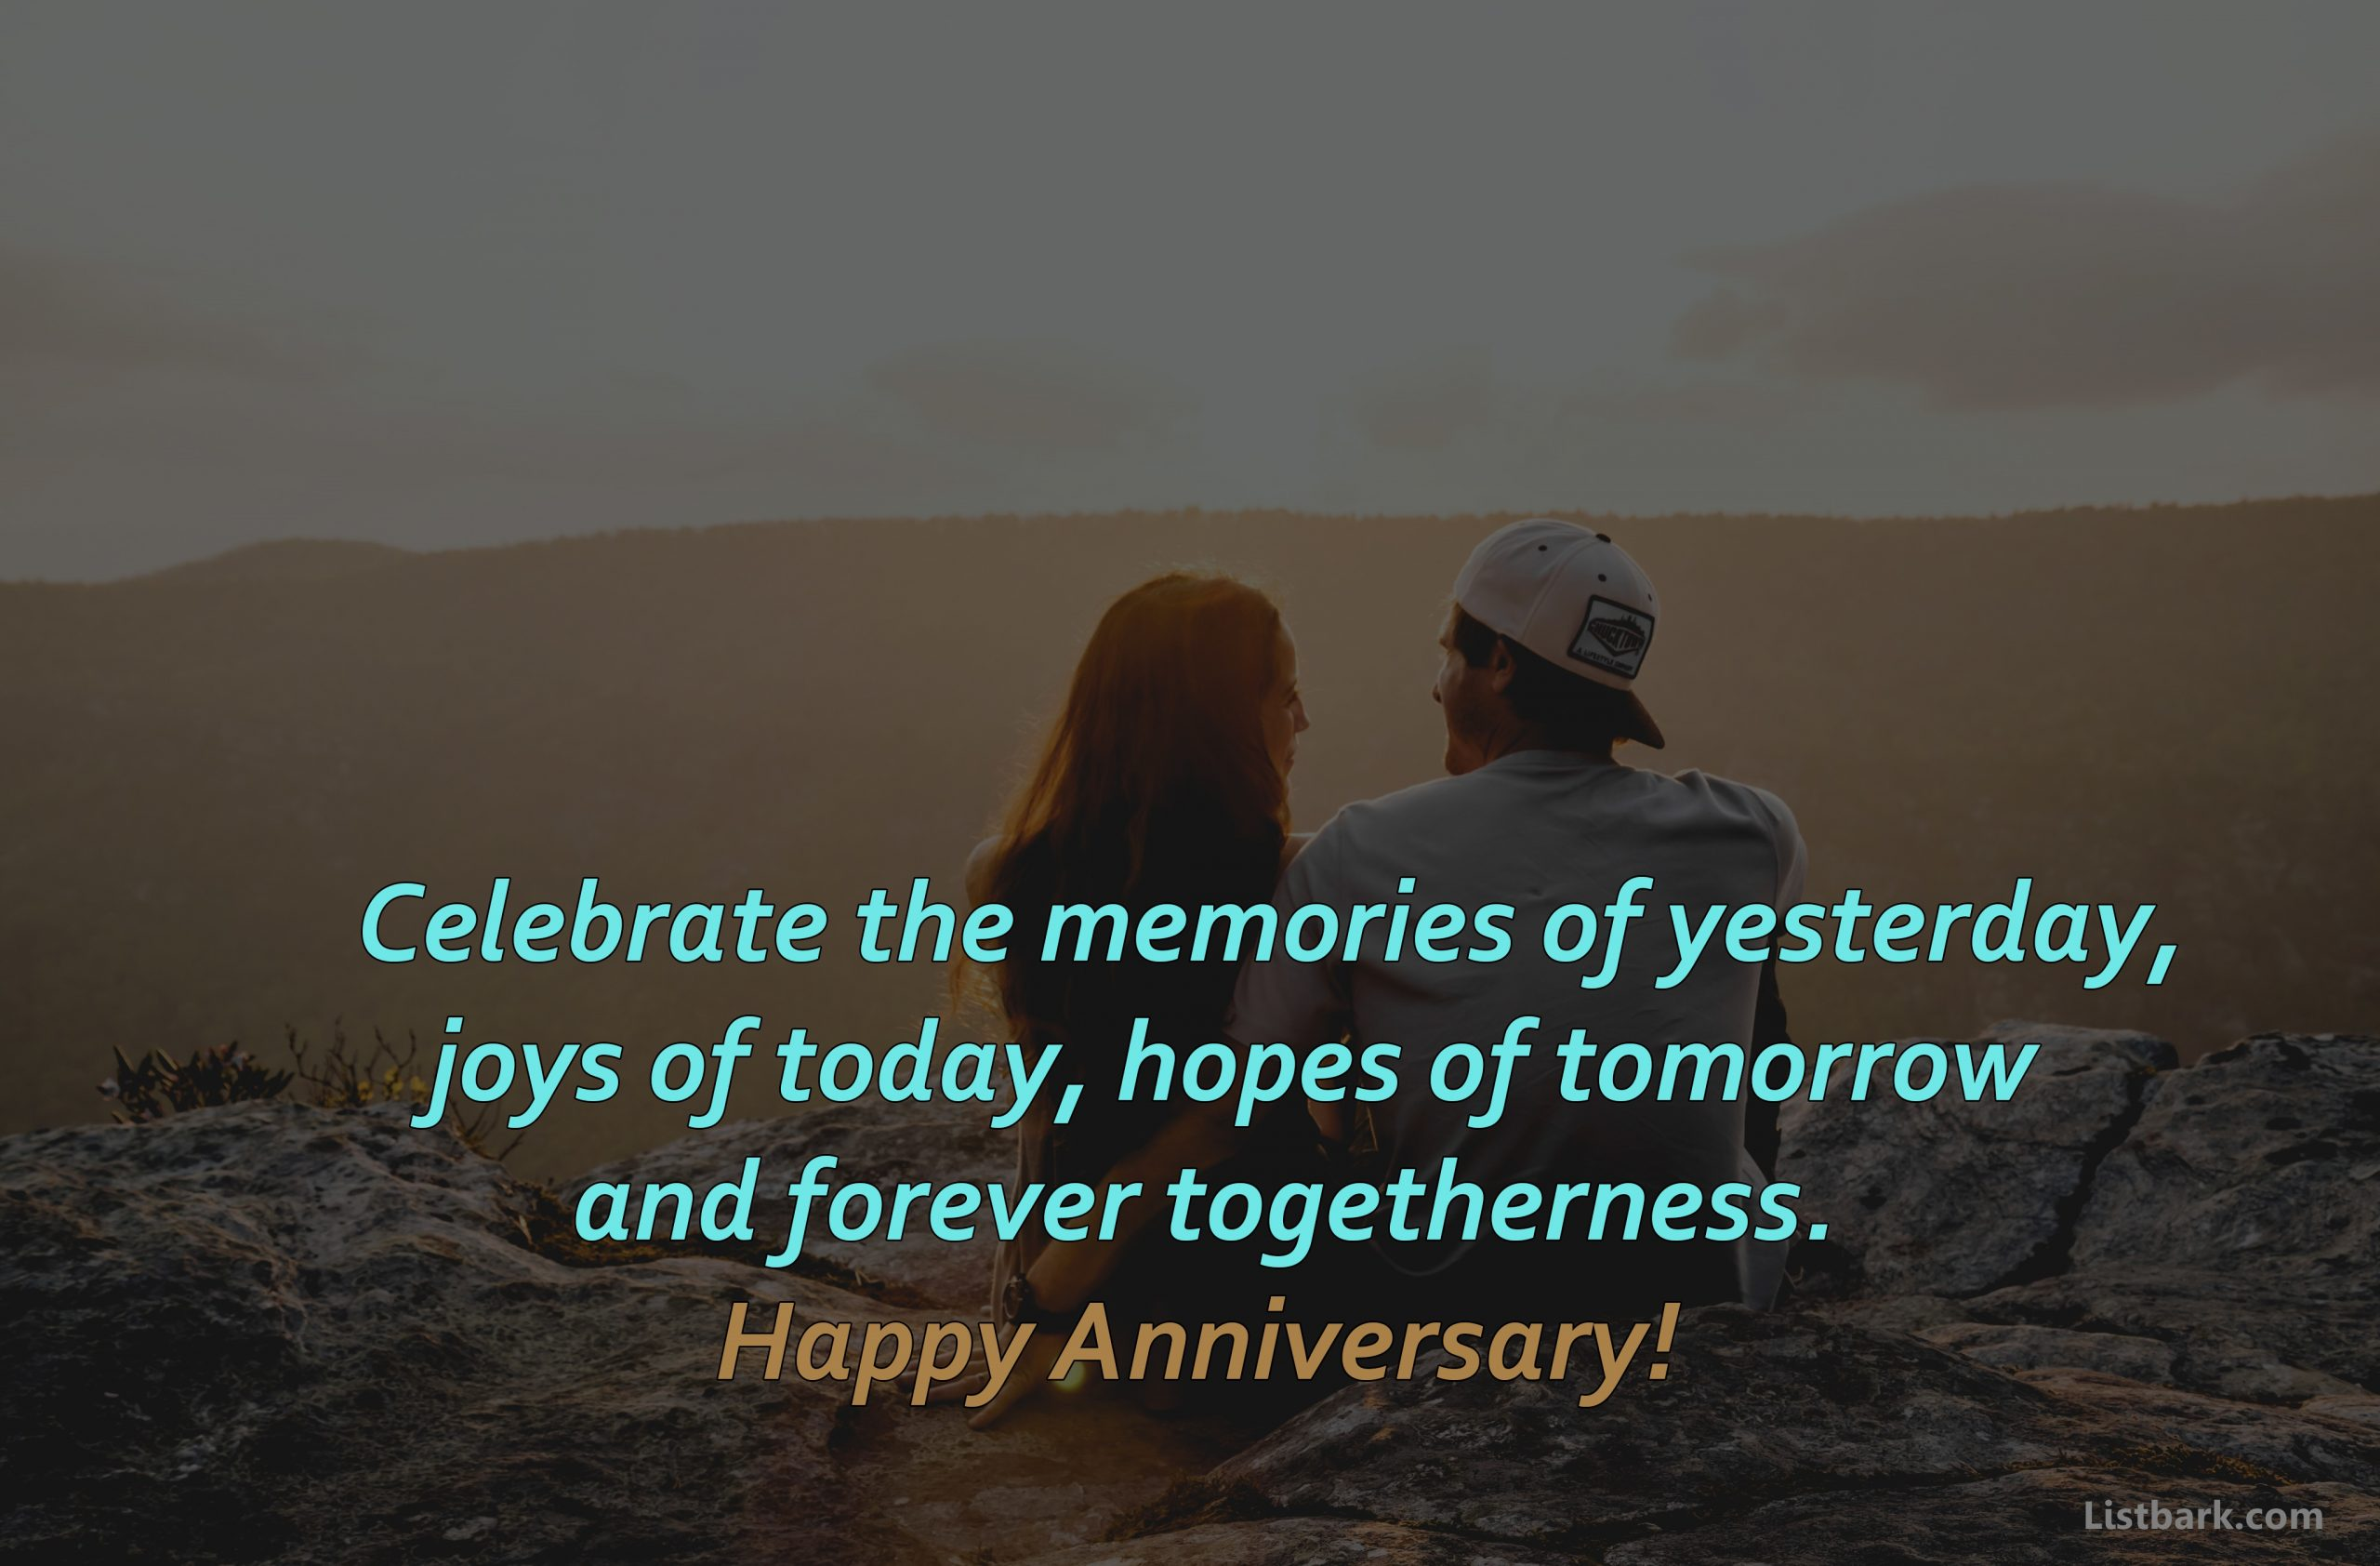 100+ Wedding Anniversary SMS, Messages, Wishes, Quotes with Images